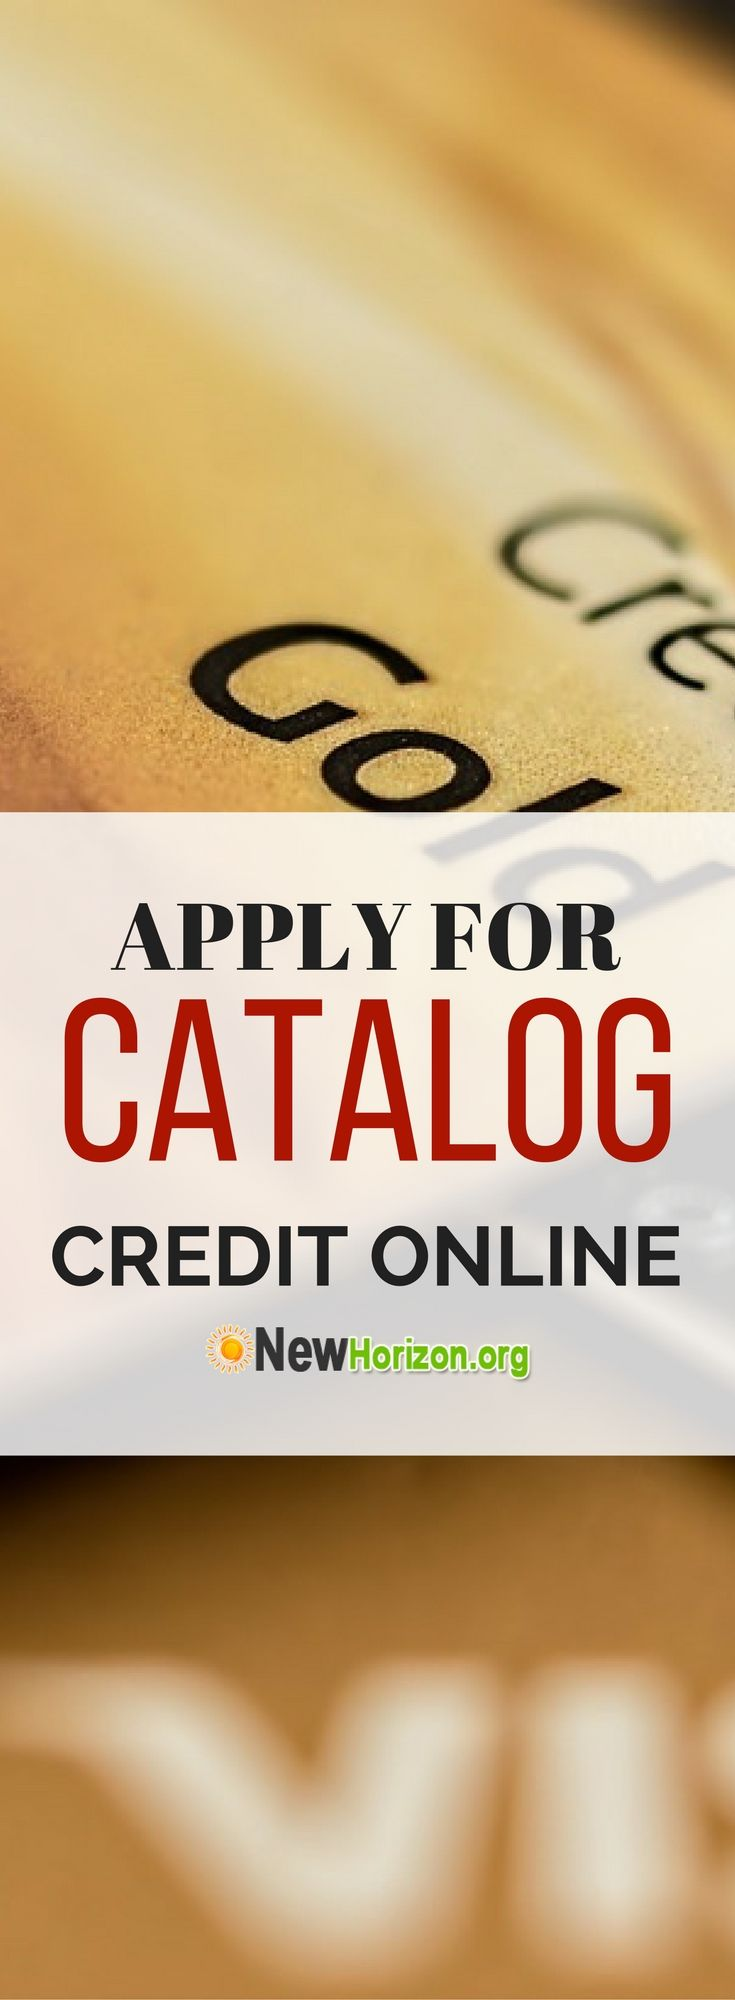 Merchandise Cards Catalog Credit Cards Bad Credit Credit Cards Guaranteed Approval Credit Card Types Of Credit Cards